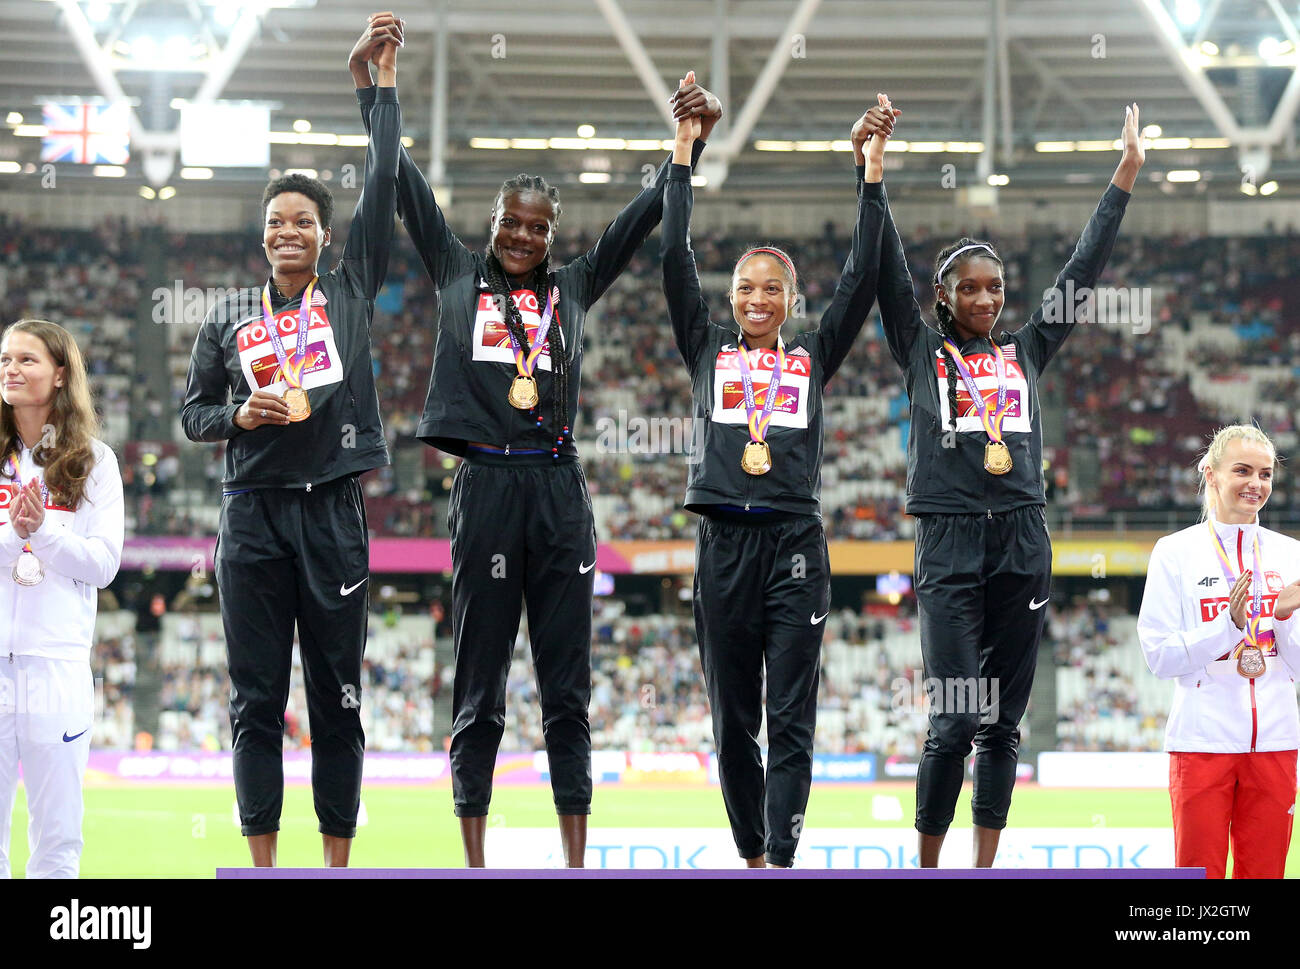 USA's 4x400m Women's Relay Team (left to right) Quanera Hayes, Allyson Felix, Shakima Wimbley and Phyllis Francis on the podium with their gold medals during day ten of the 2017 IAAF World Championships at the London Stadium. PRESS ASSOCIATION Photo. Picture date: Sunday August 13, 2017. See PA story ATHLETICS World. Photo credit should read: Jonathan Brady/PA Wire. RESTRICTIONS: Editorial use only. No transmission of sound or moving images and no video simulation. - Stock Image